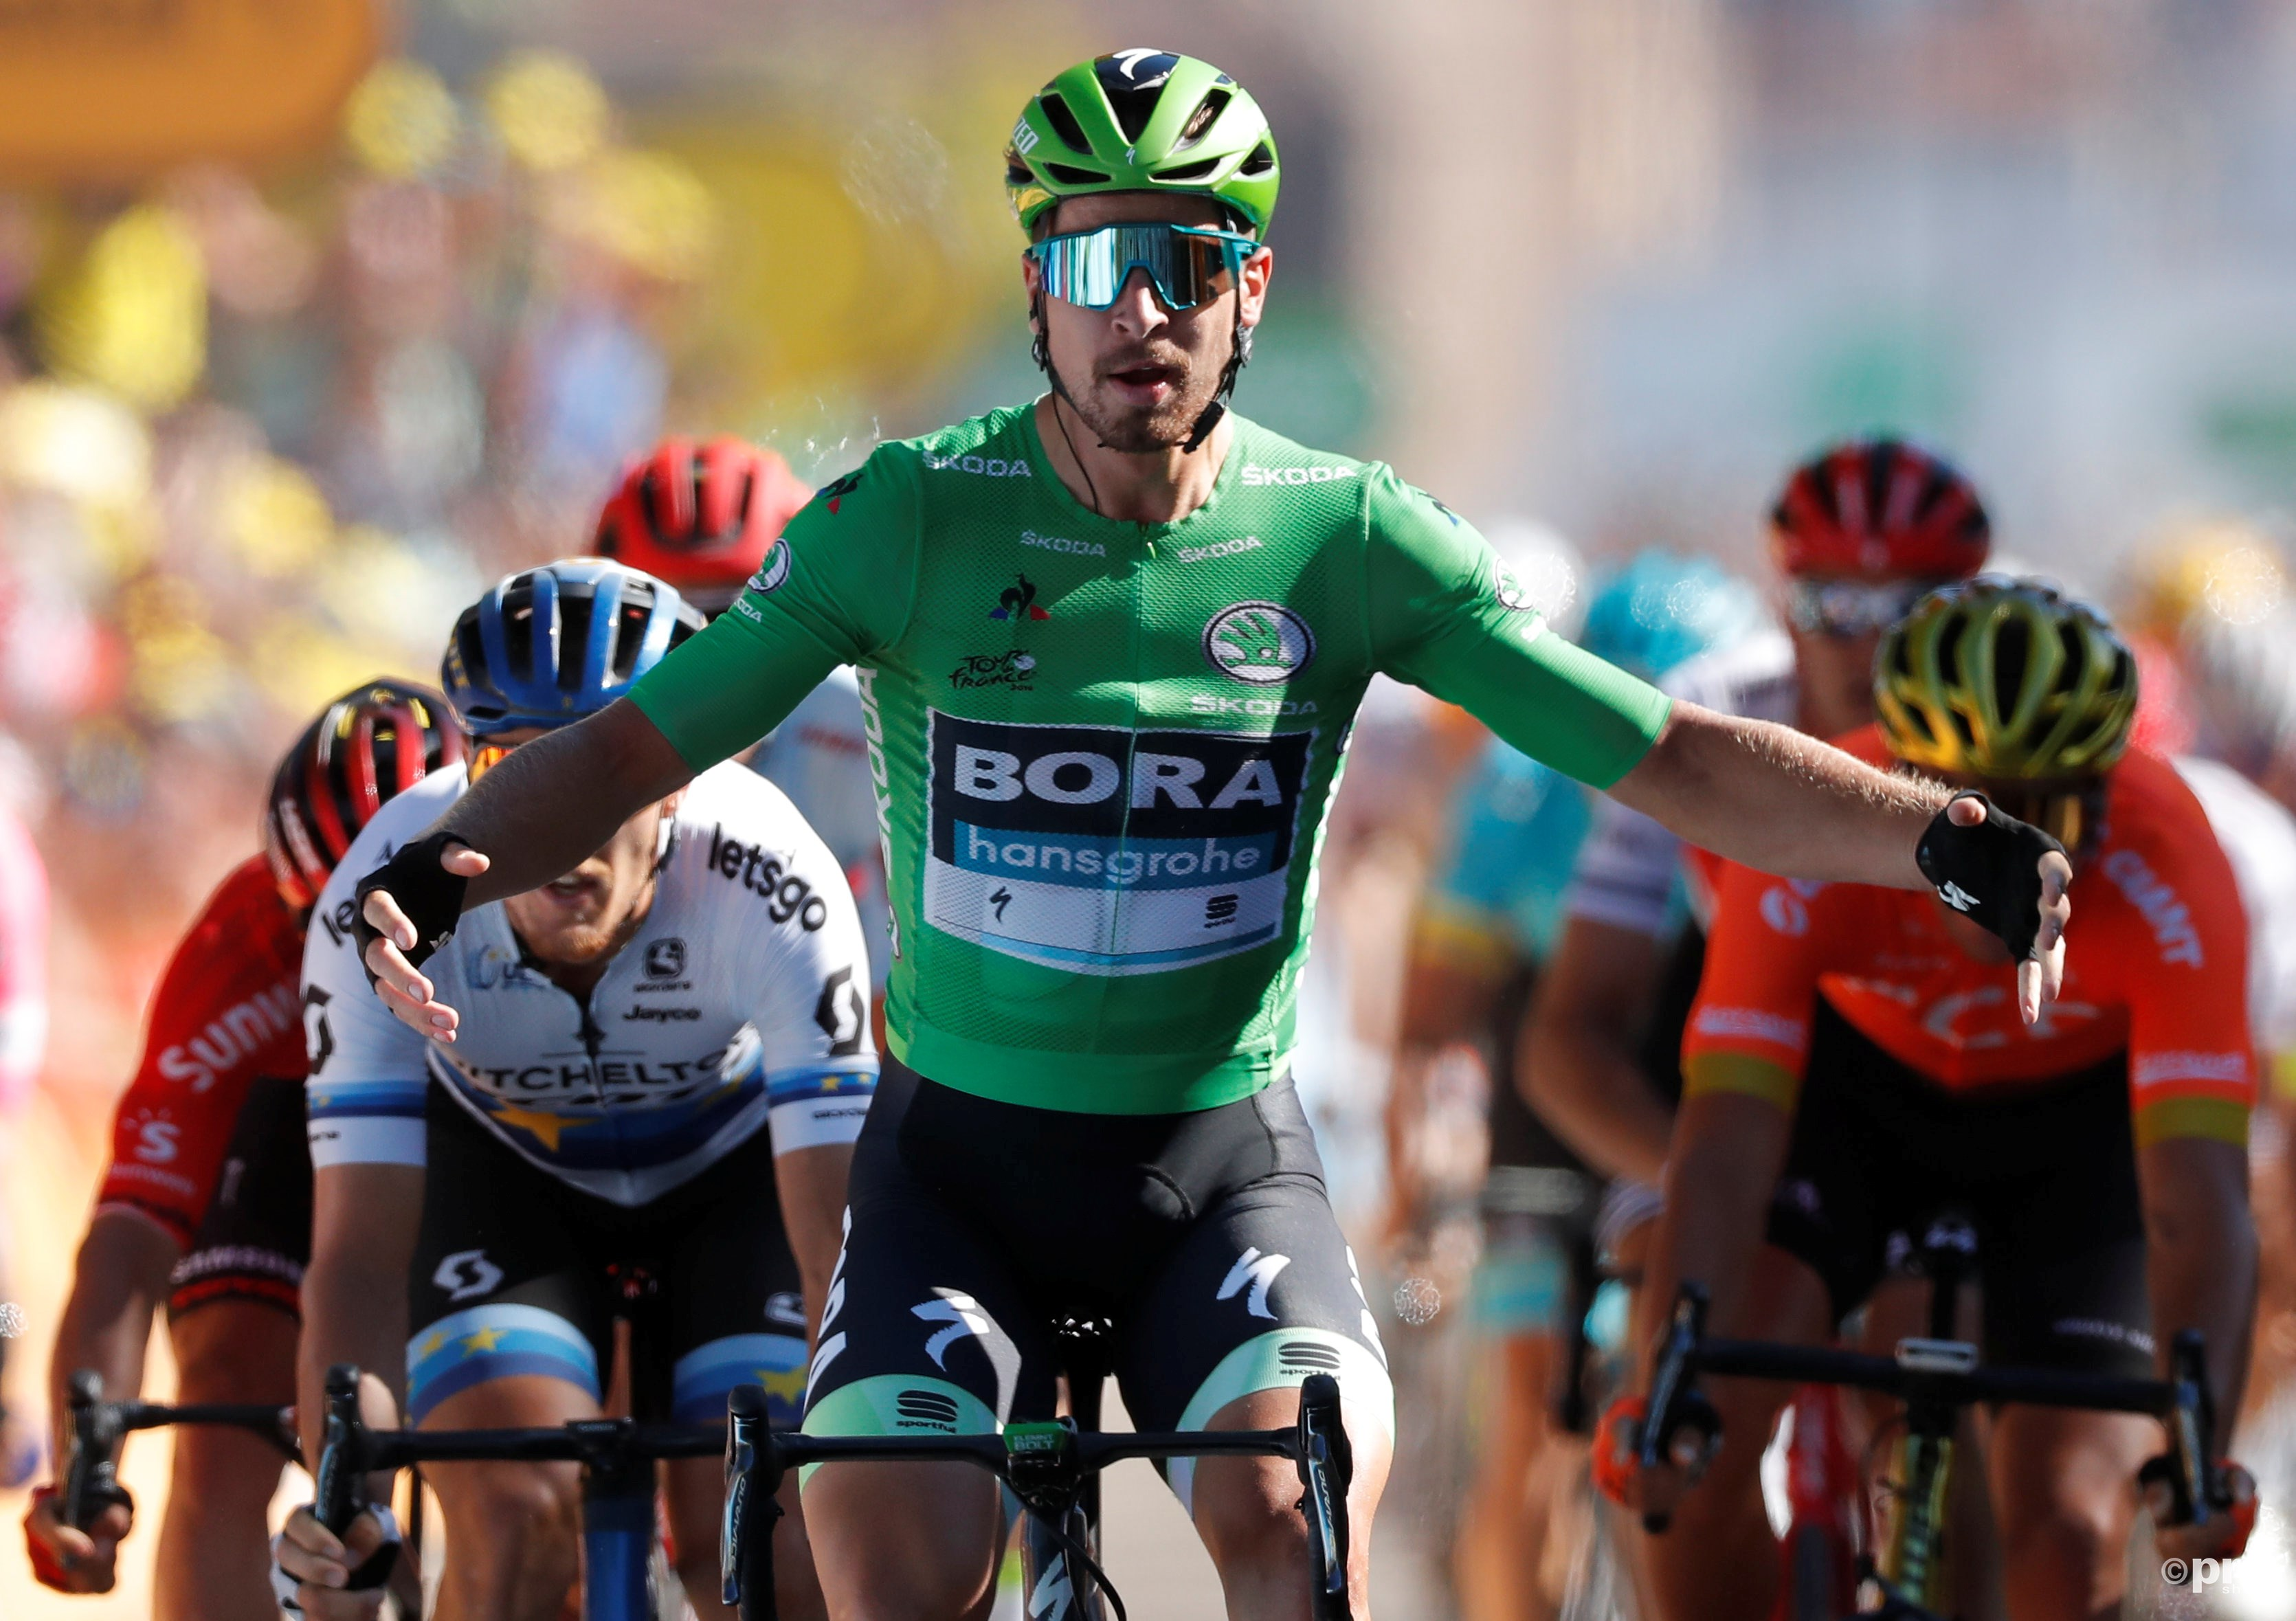 Sagan sprint naar twaalfde etappezege in Tour de France (Pro Shots / Action Images)